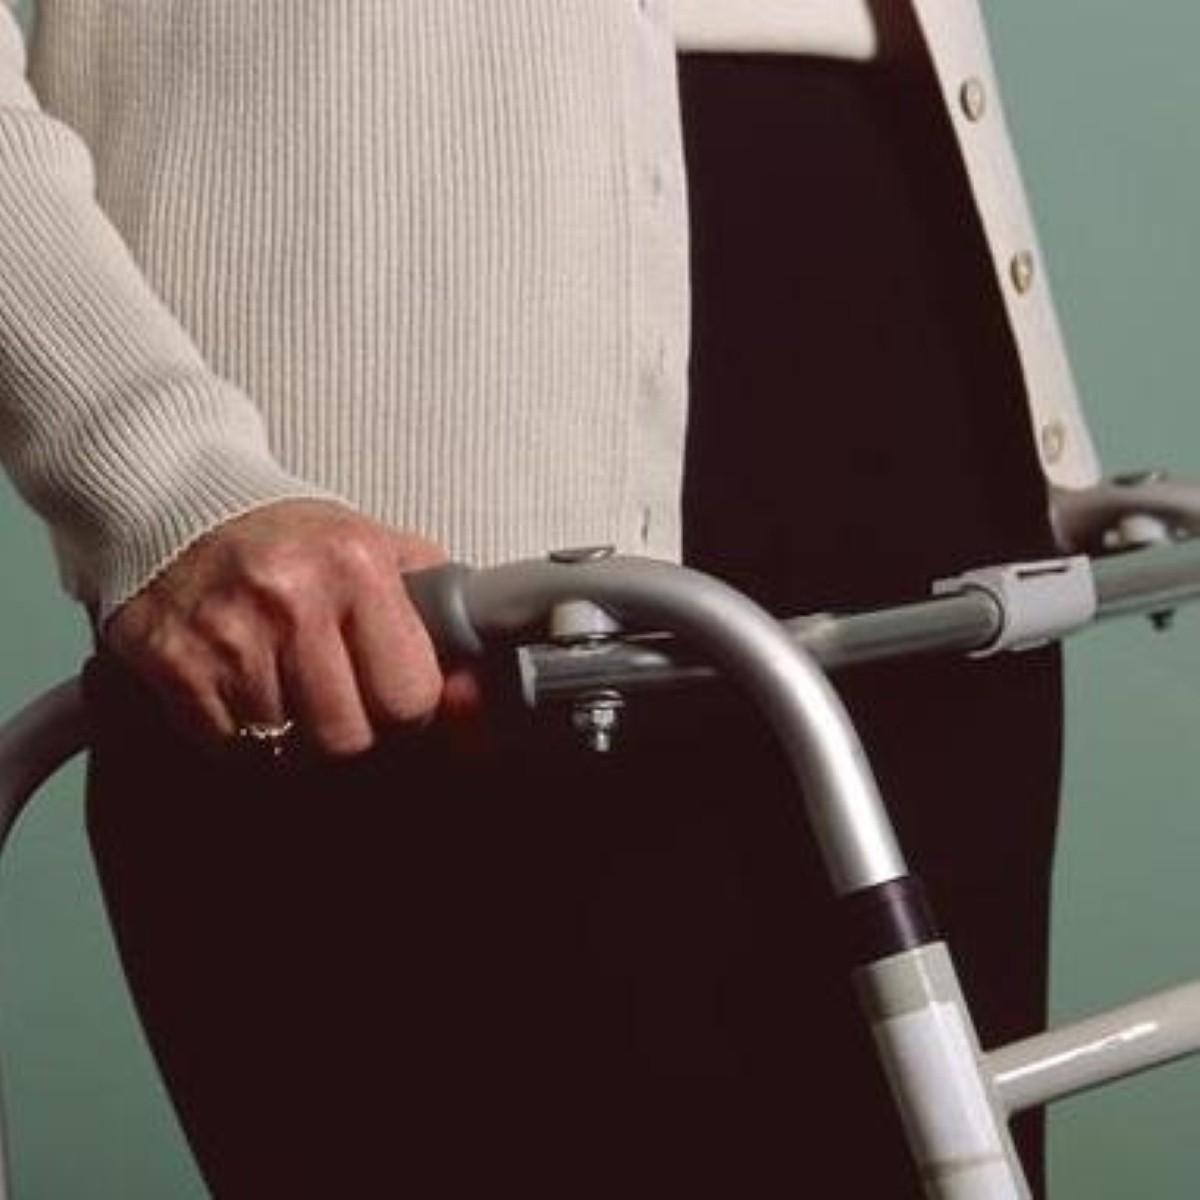 'Lack of exercise affects mental health'